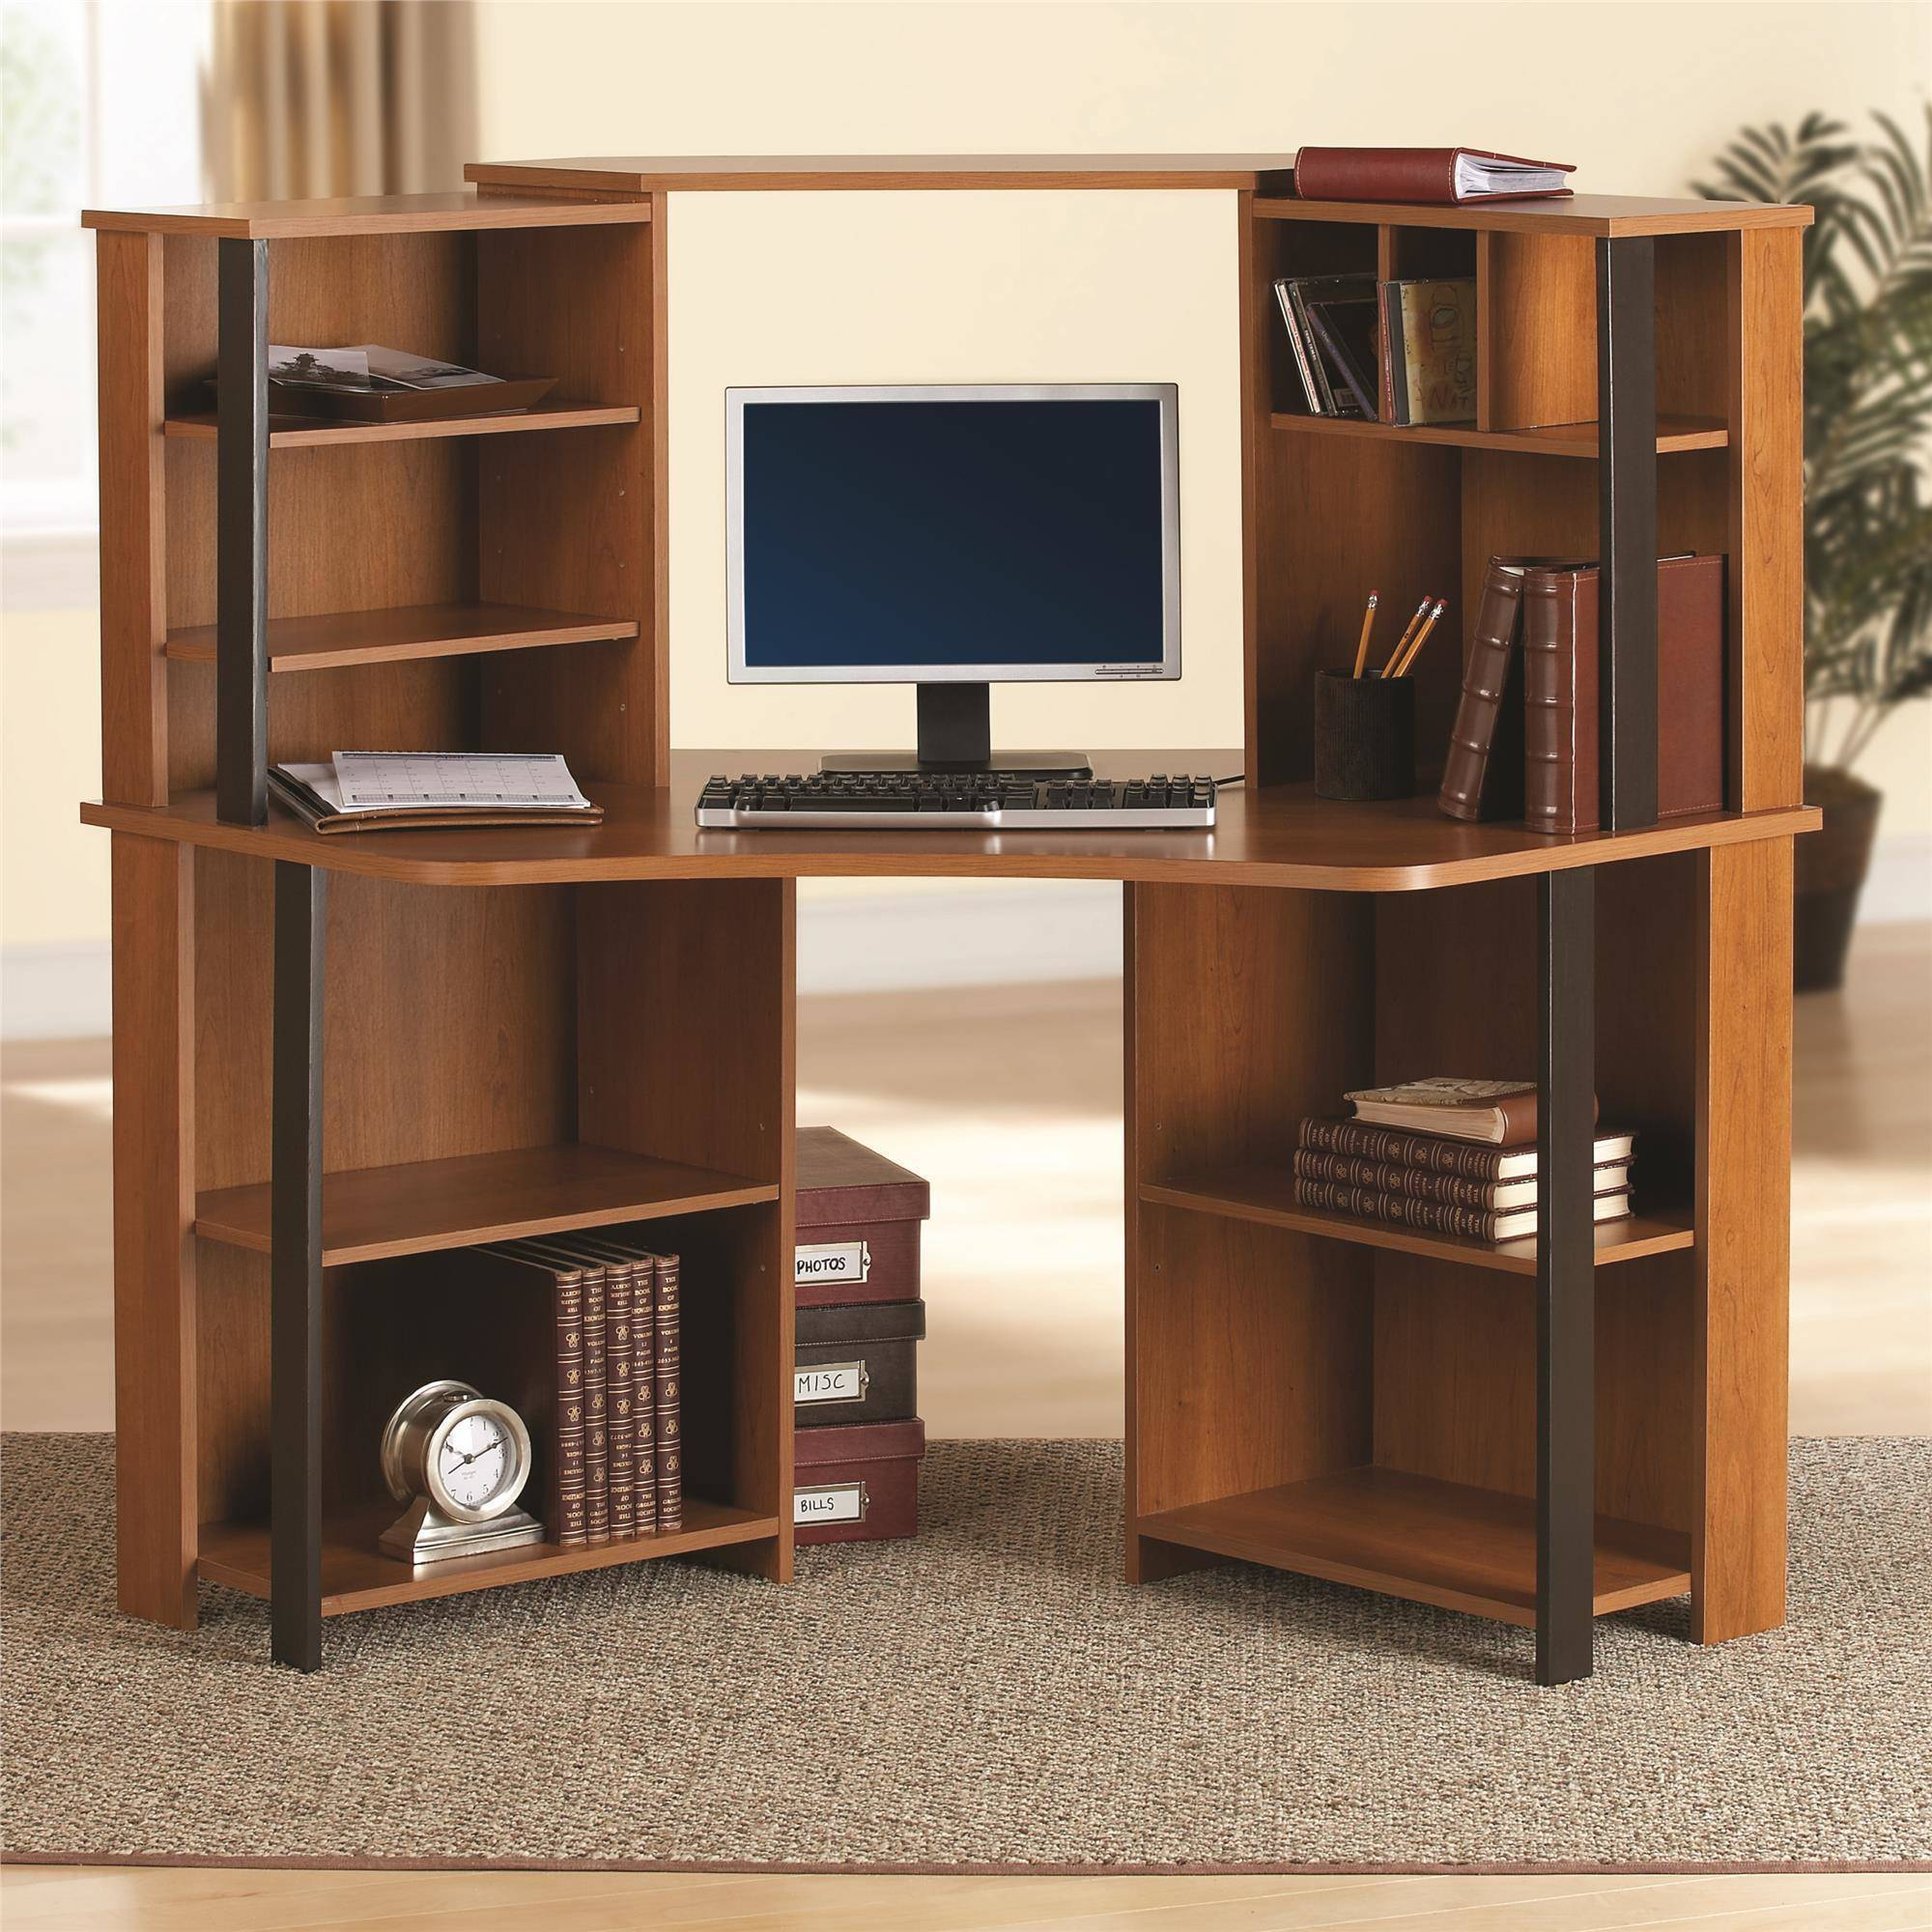 storage painted small black and the room computer home ideas in bookshelf desk corner furniture with office